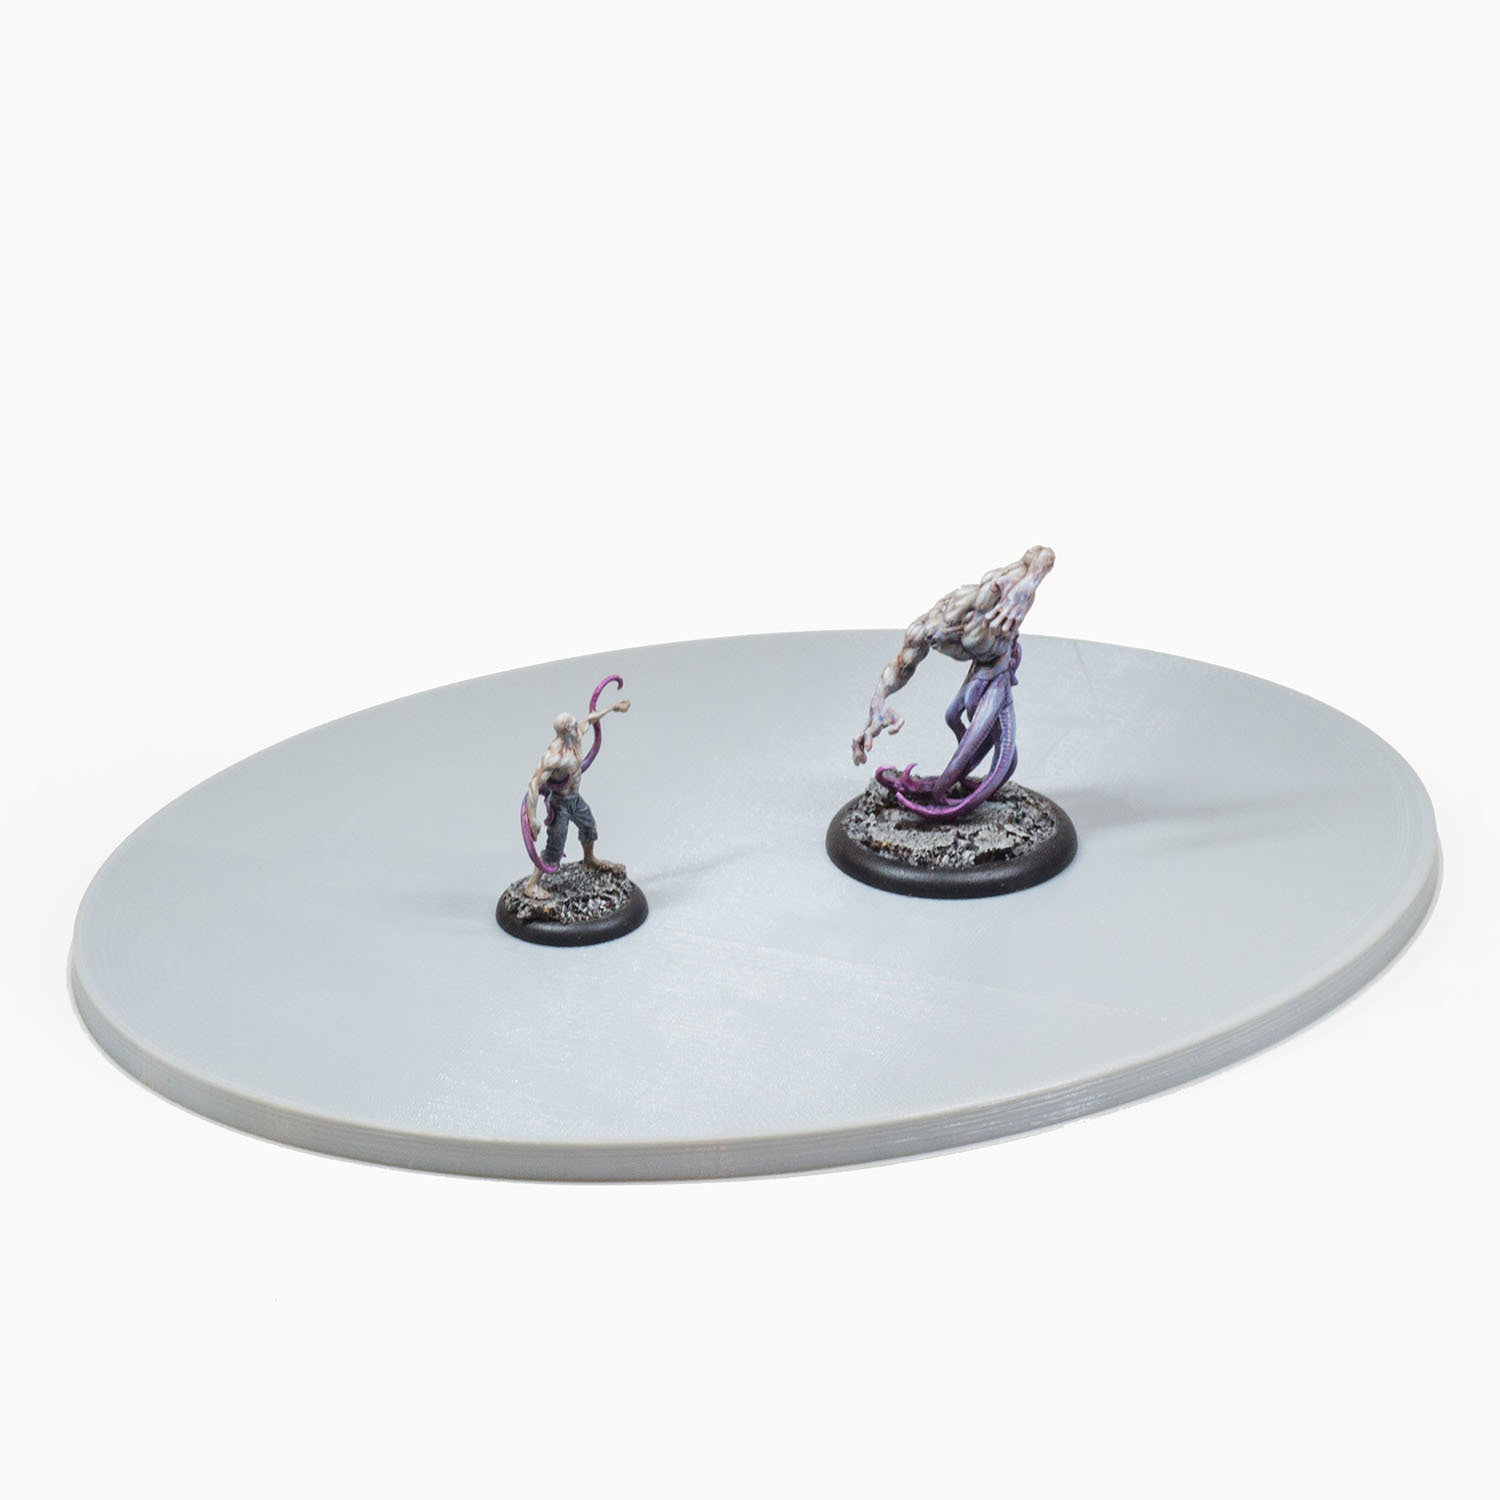 280mm by 210mm Oval Base